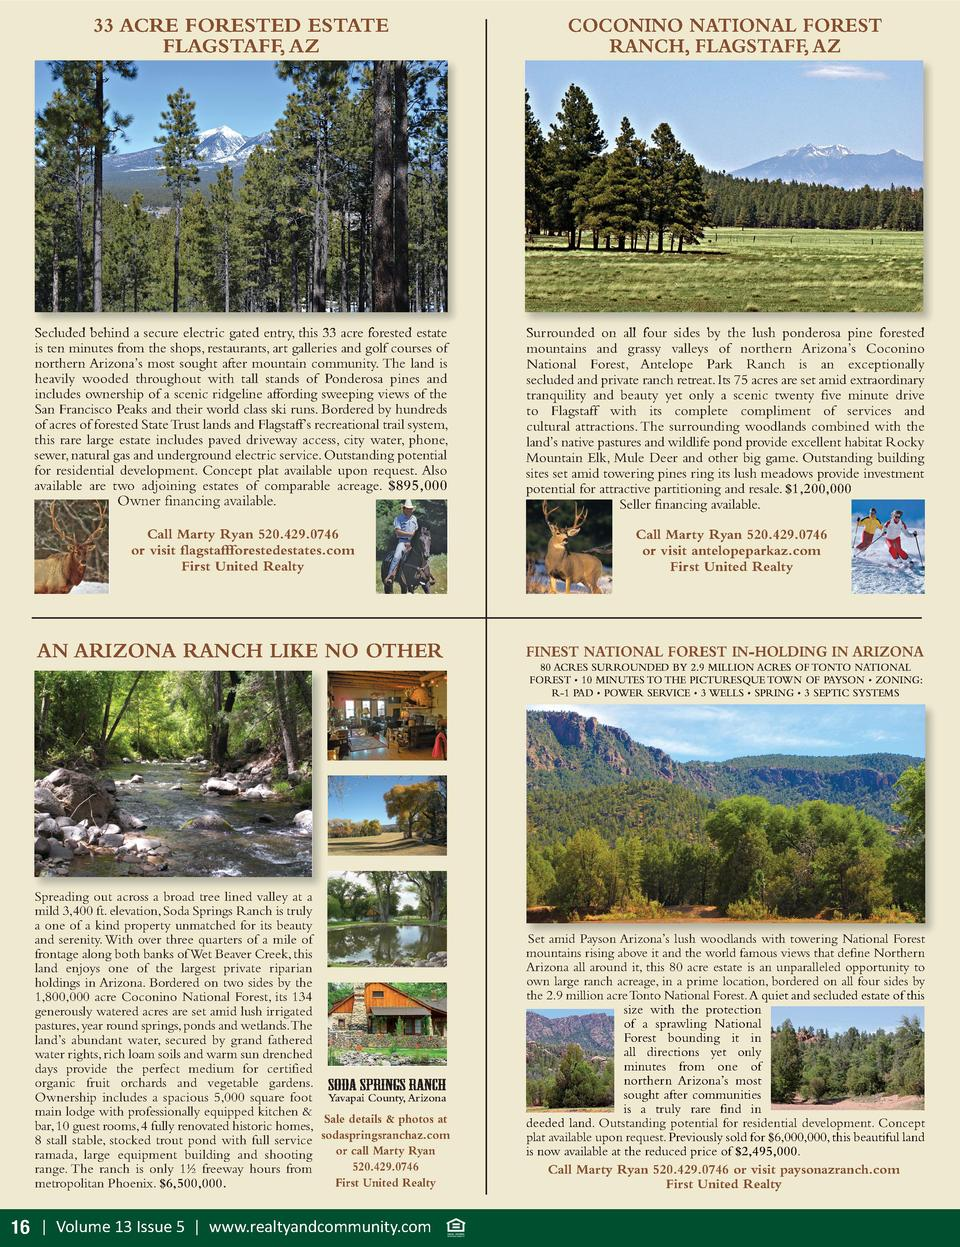 33 ACRE FORESTED ESTATE FLAGSTAFF, AZ  COCONINO NATIONAL FOREST RANCH, FLAGSTAFF, AZ  Secluded behind a secure electric ga...